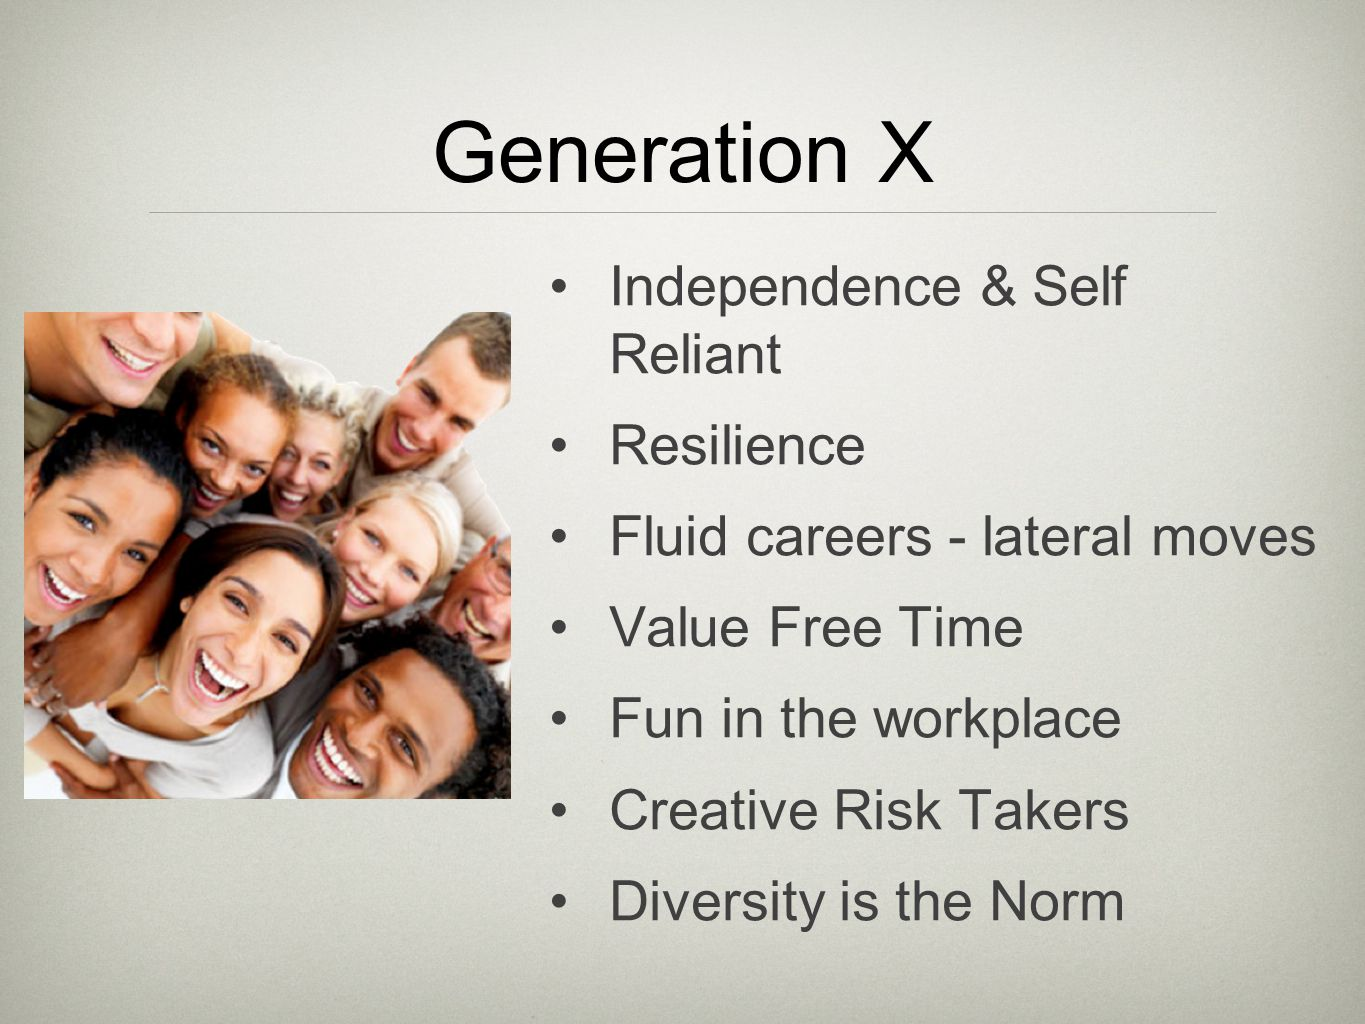 Generation X Independence & Self Reliant Resilience Fluid careers - lateral moves Value Free Time Fun in the workplace Creative Risk Takers Diversity